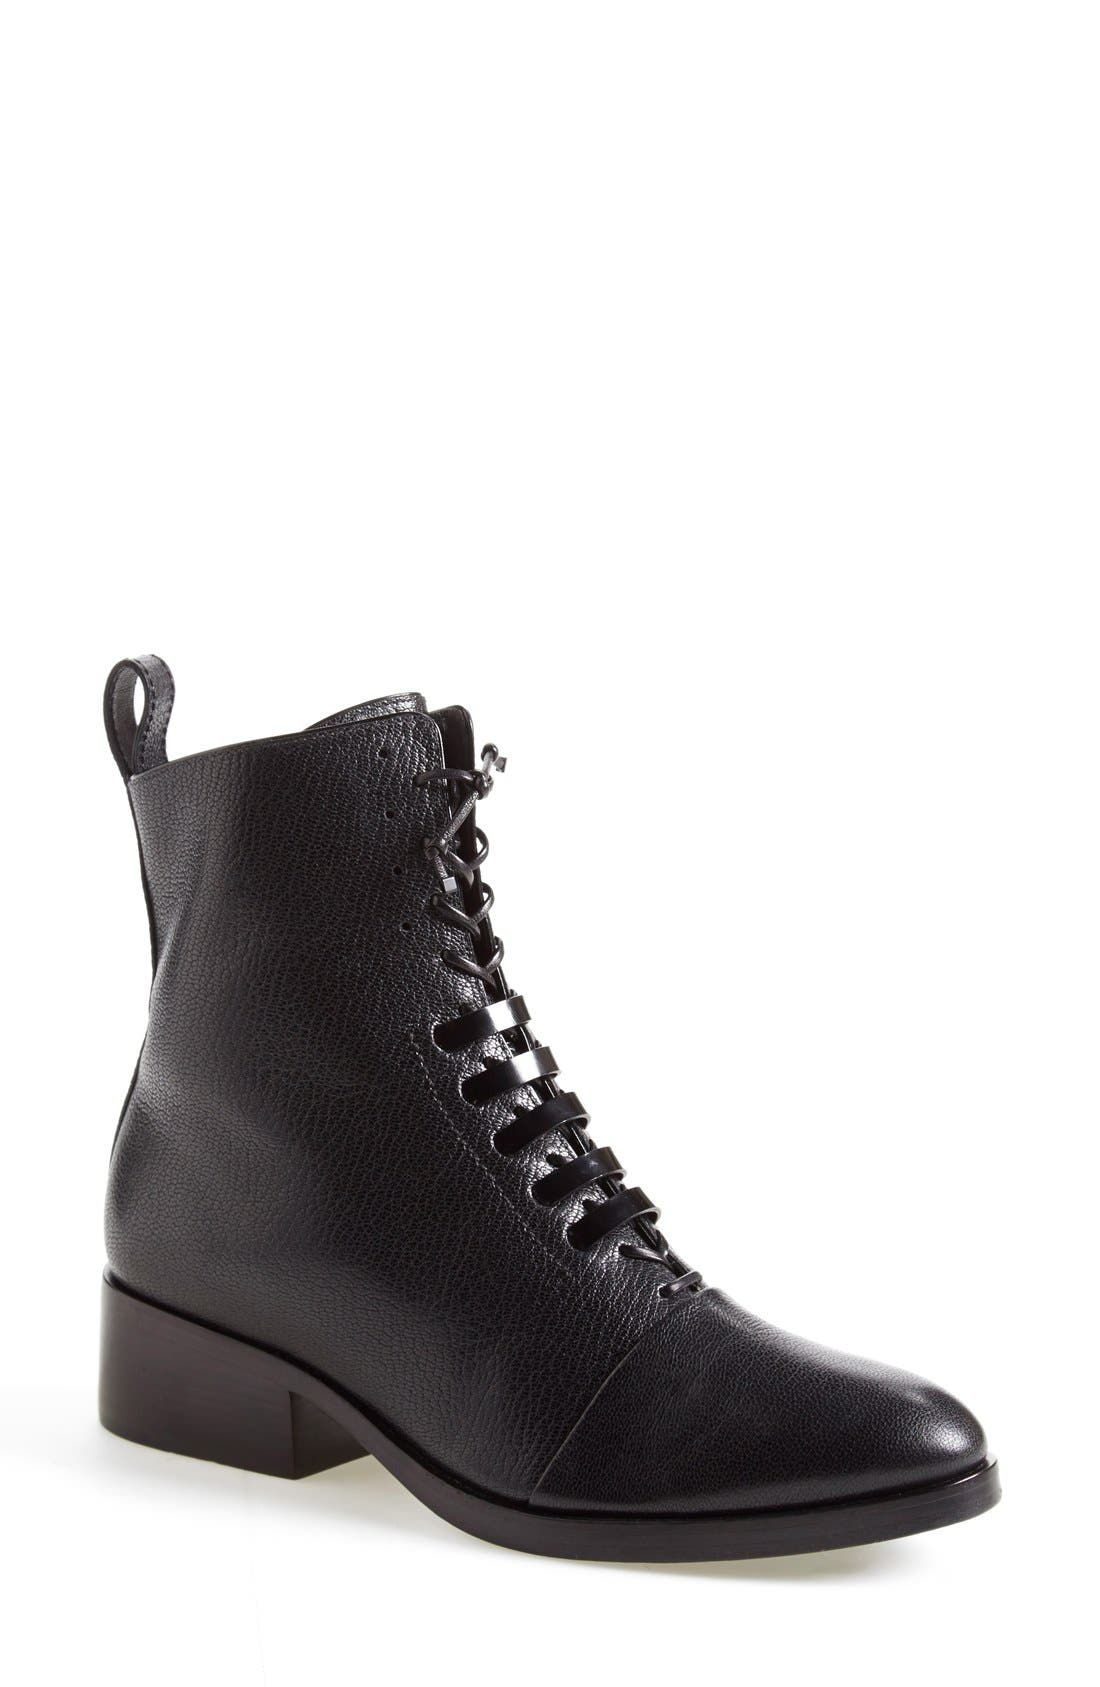 Alternate Image 1 Selected - 3.1 Phillip Lim 'Alexa' Lace-Up Ankle Boot (Women)